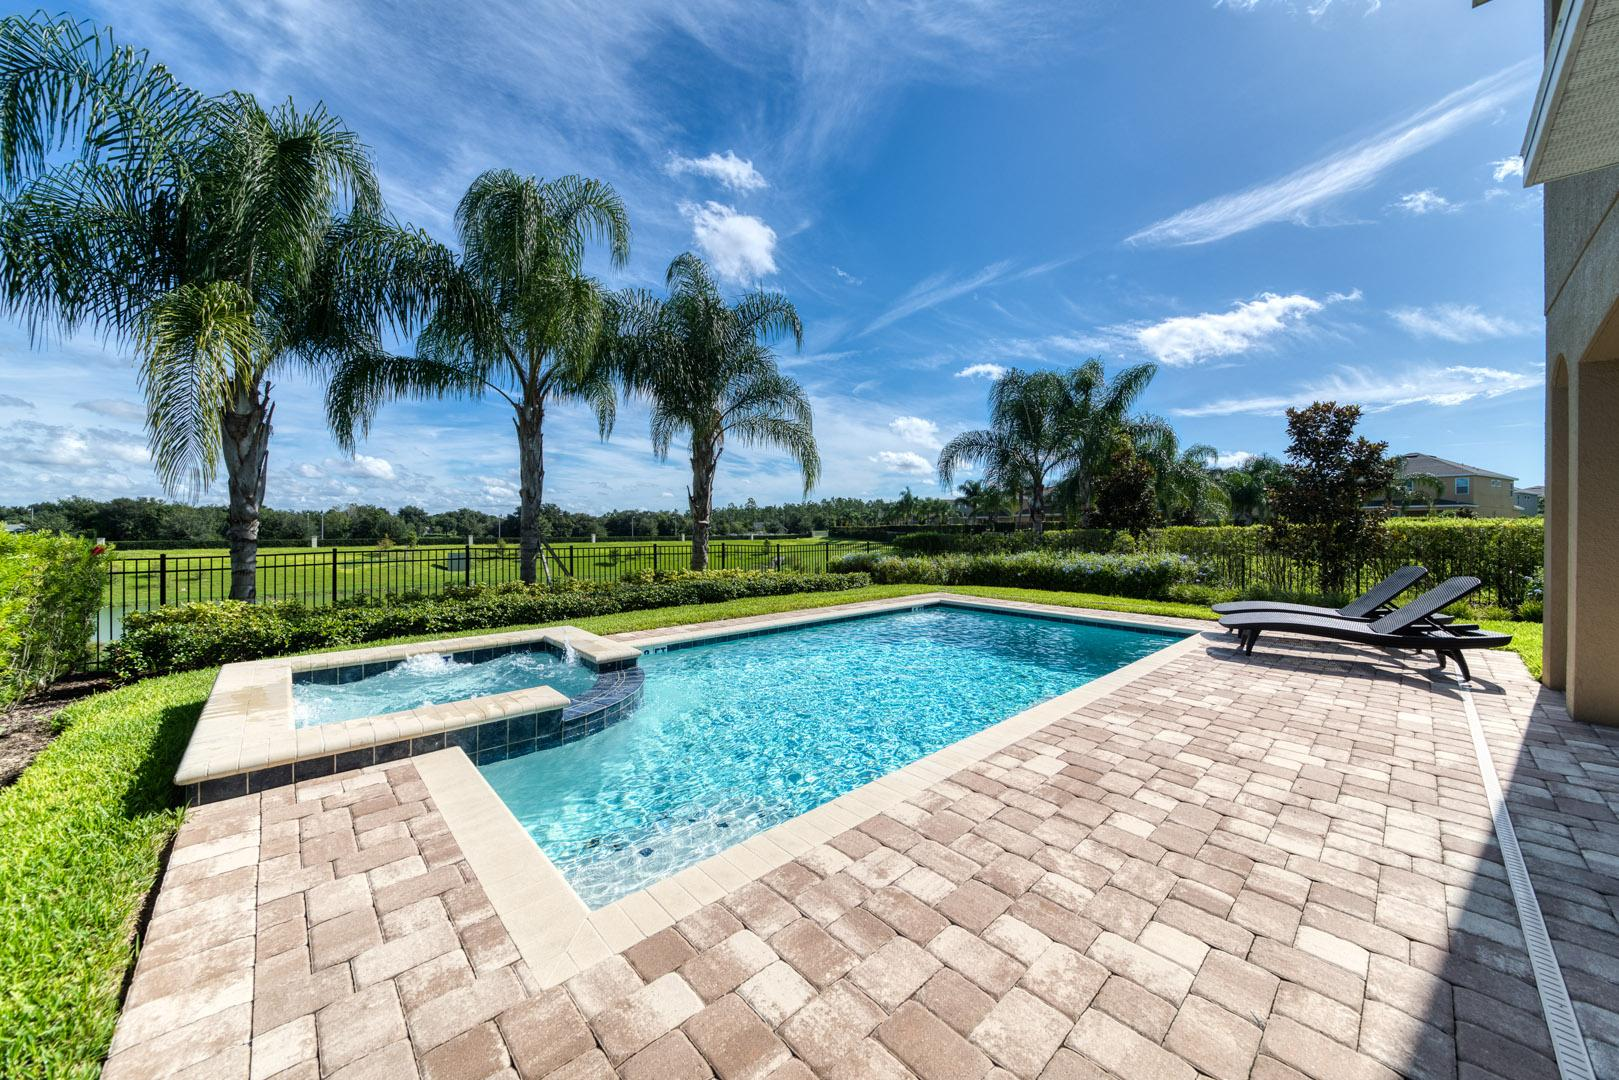 Property Image 1 - Casual, Upscale Home with Foosball, Pool & Hot Tub; Near Disney